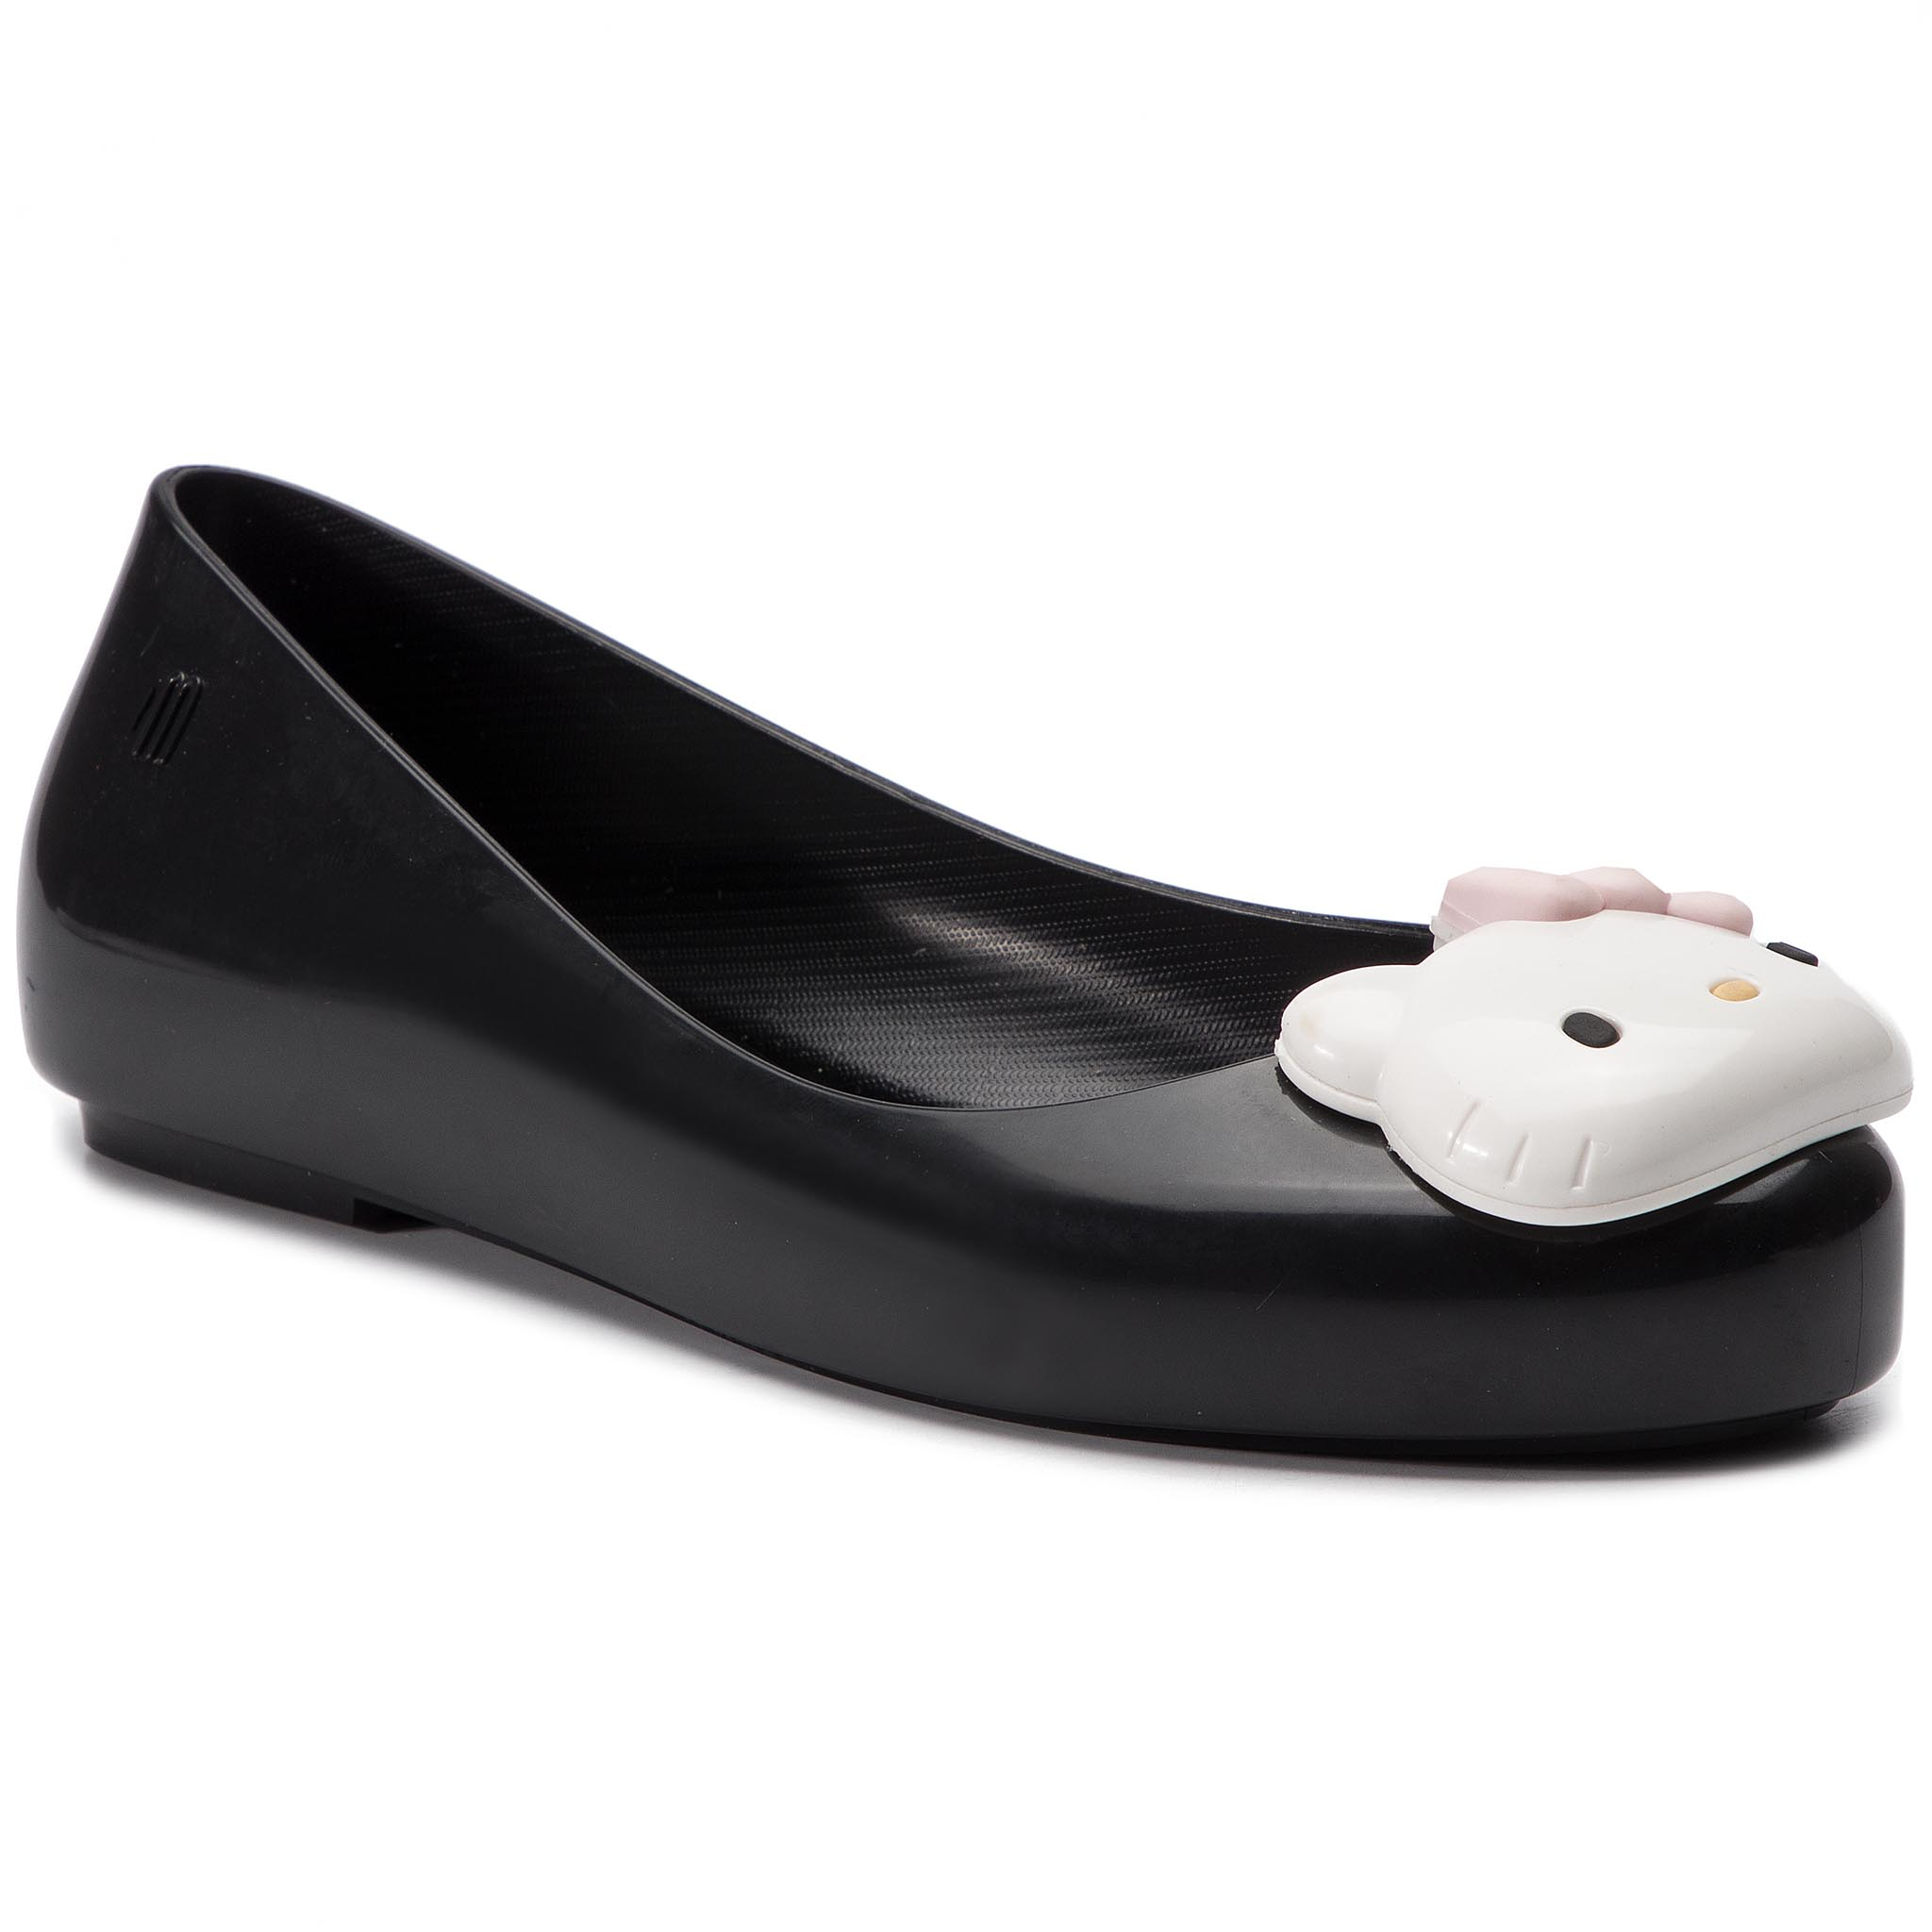 Balerinos MELISSA - Mel Space Love+Hello Kitty I 32678 Black/White 51492